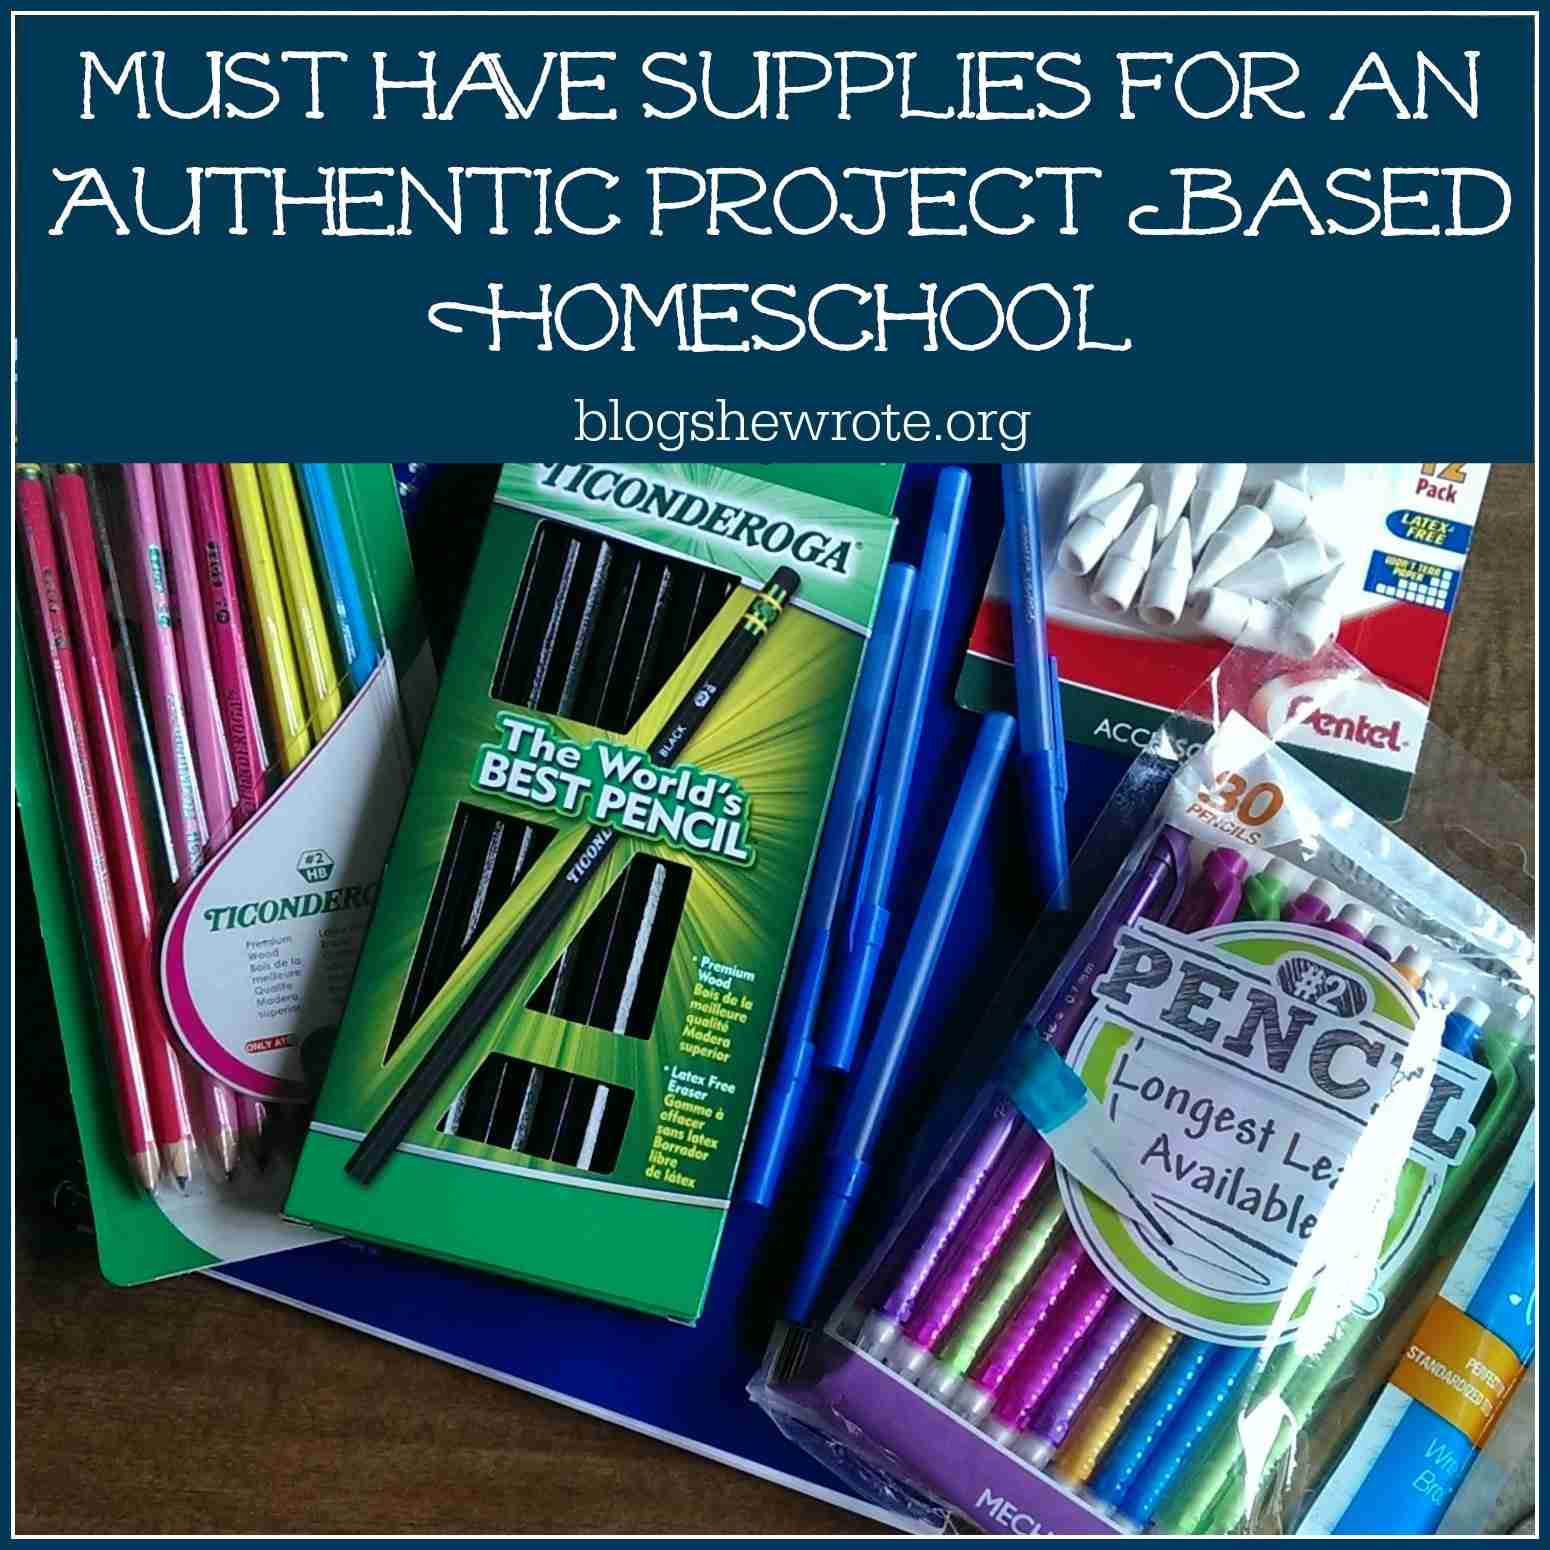 Must Have Supplies for An Authentic Project Based Homeschool=